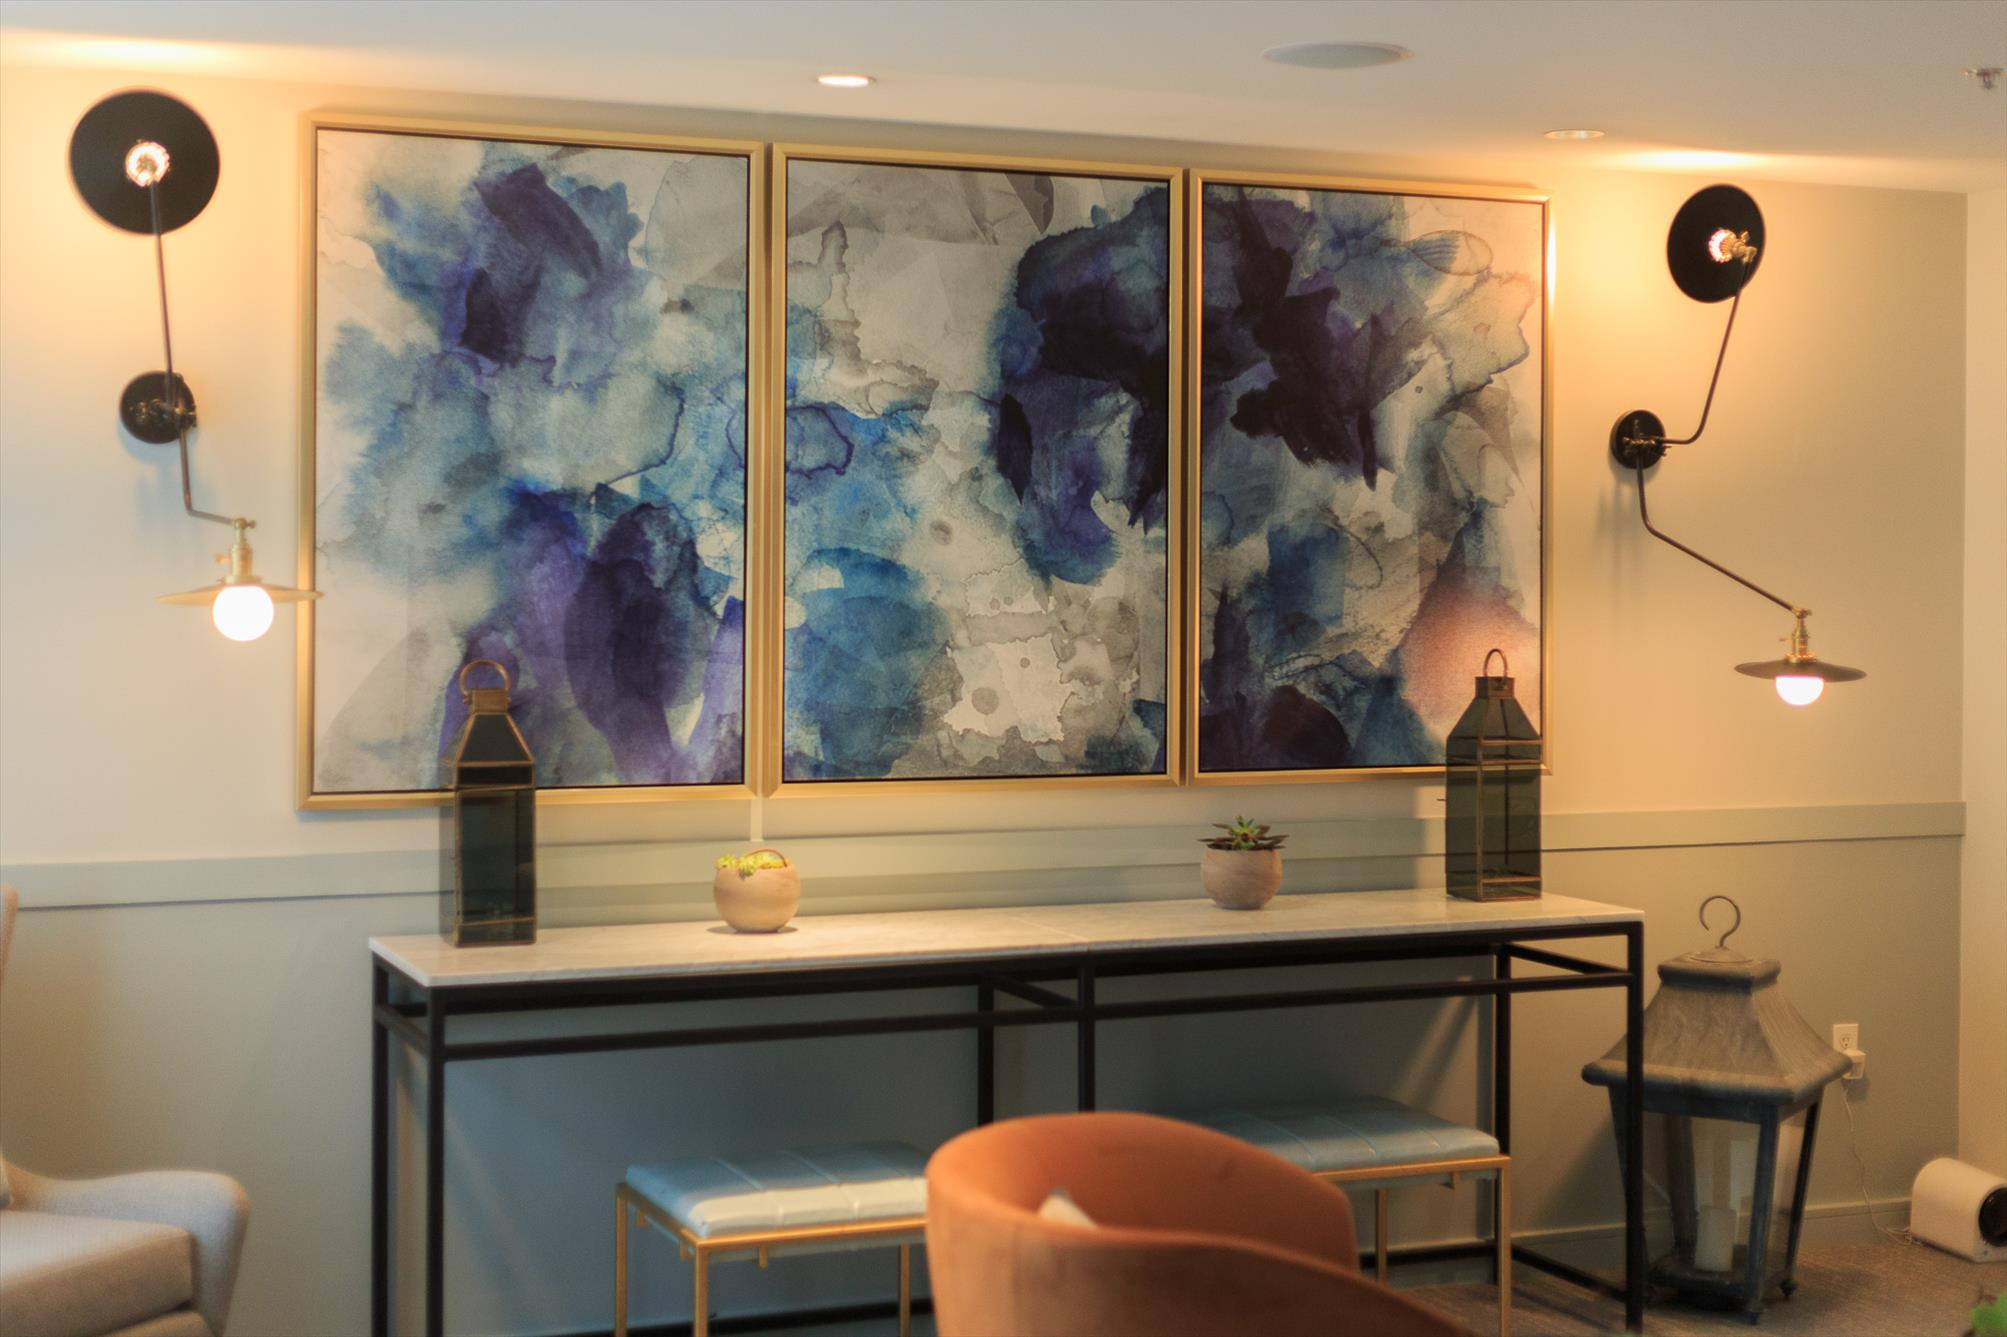 THE LORIEN HOTEL - Curated by Indiewalls